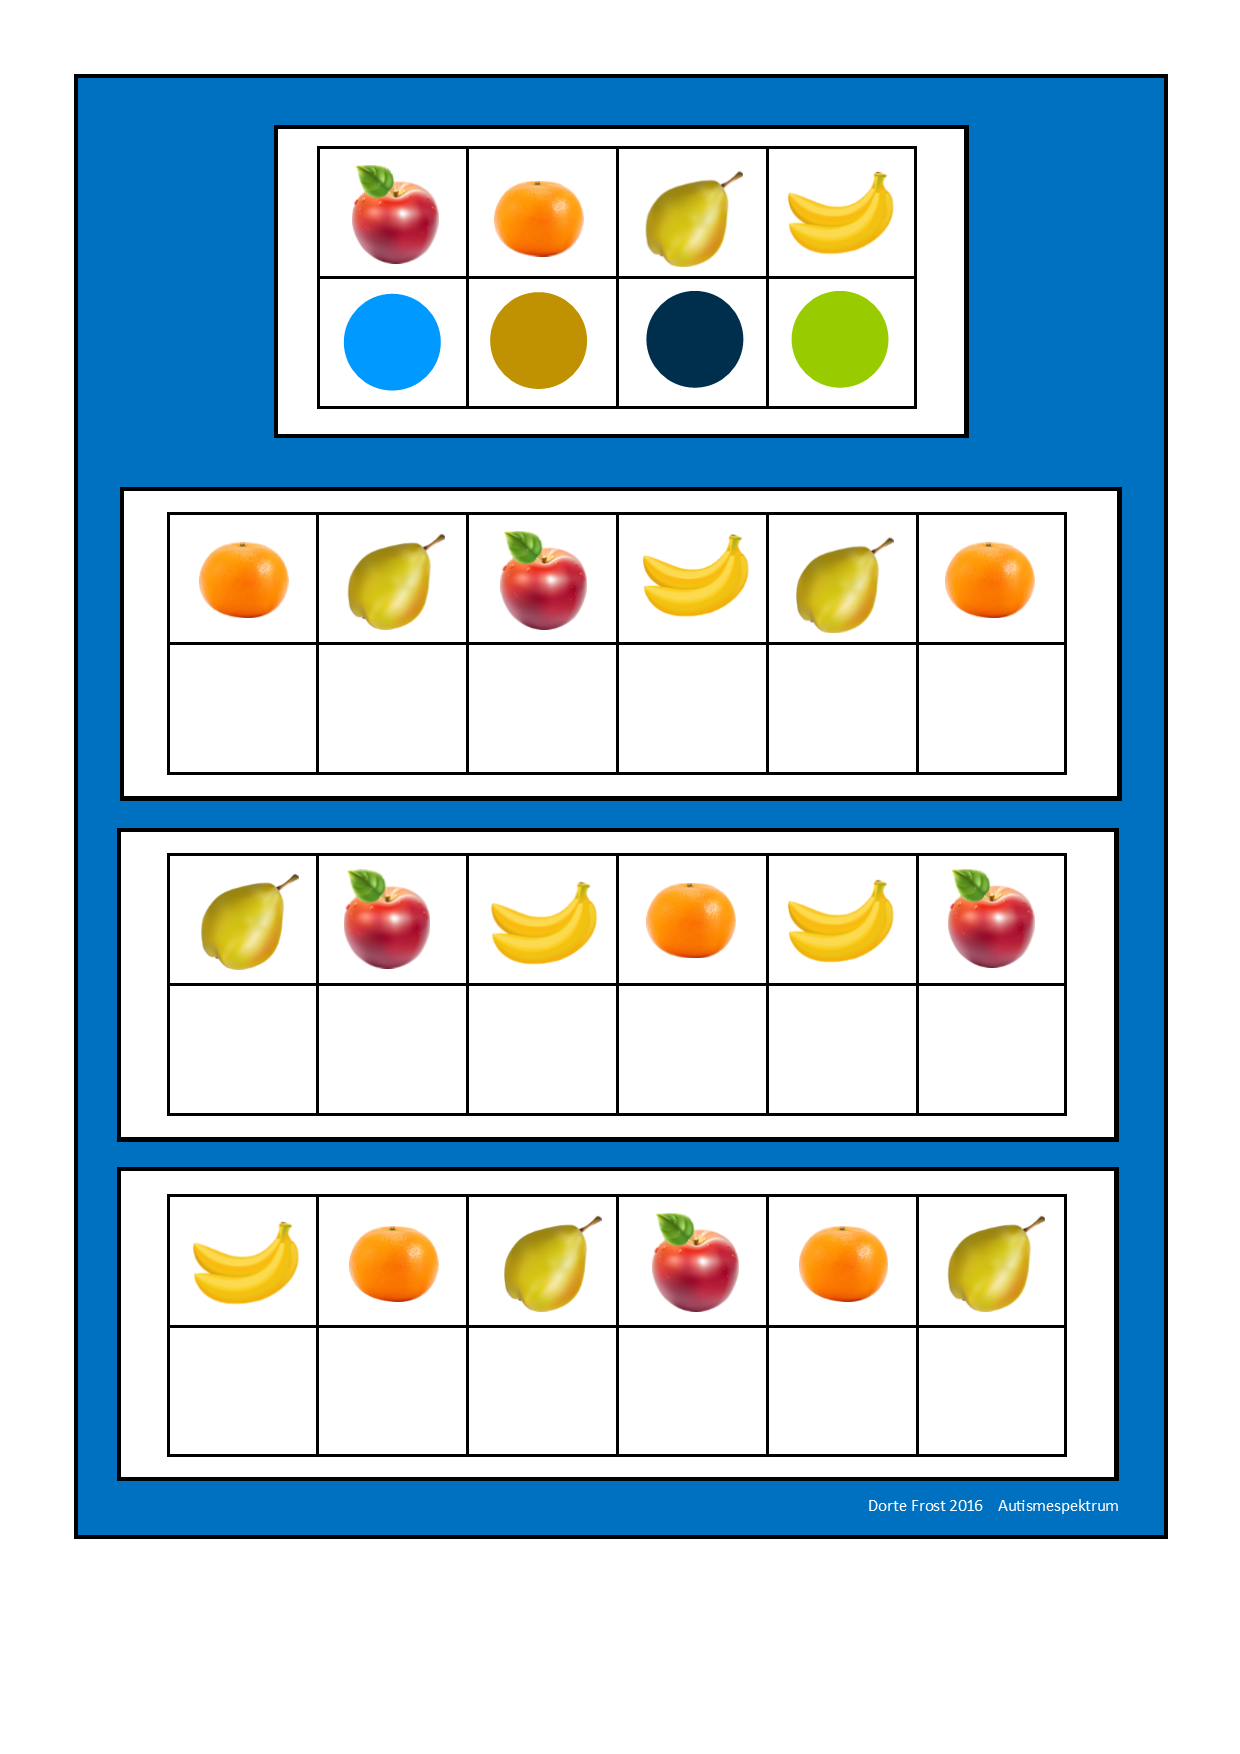 Board2 For The Fruit Visual Perception Game Find The